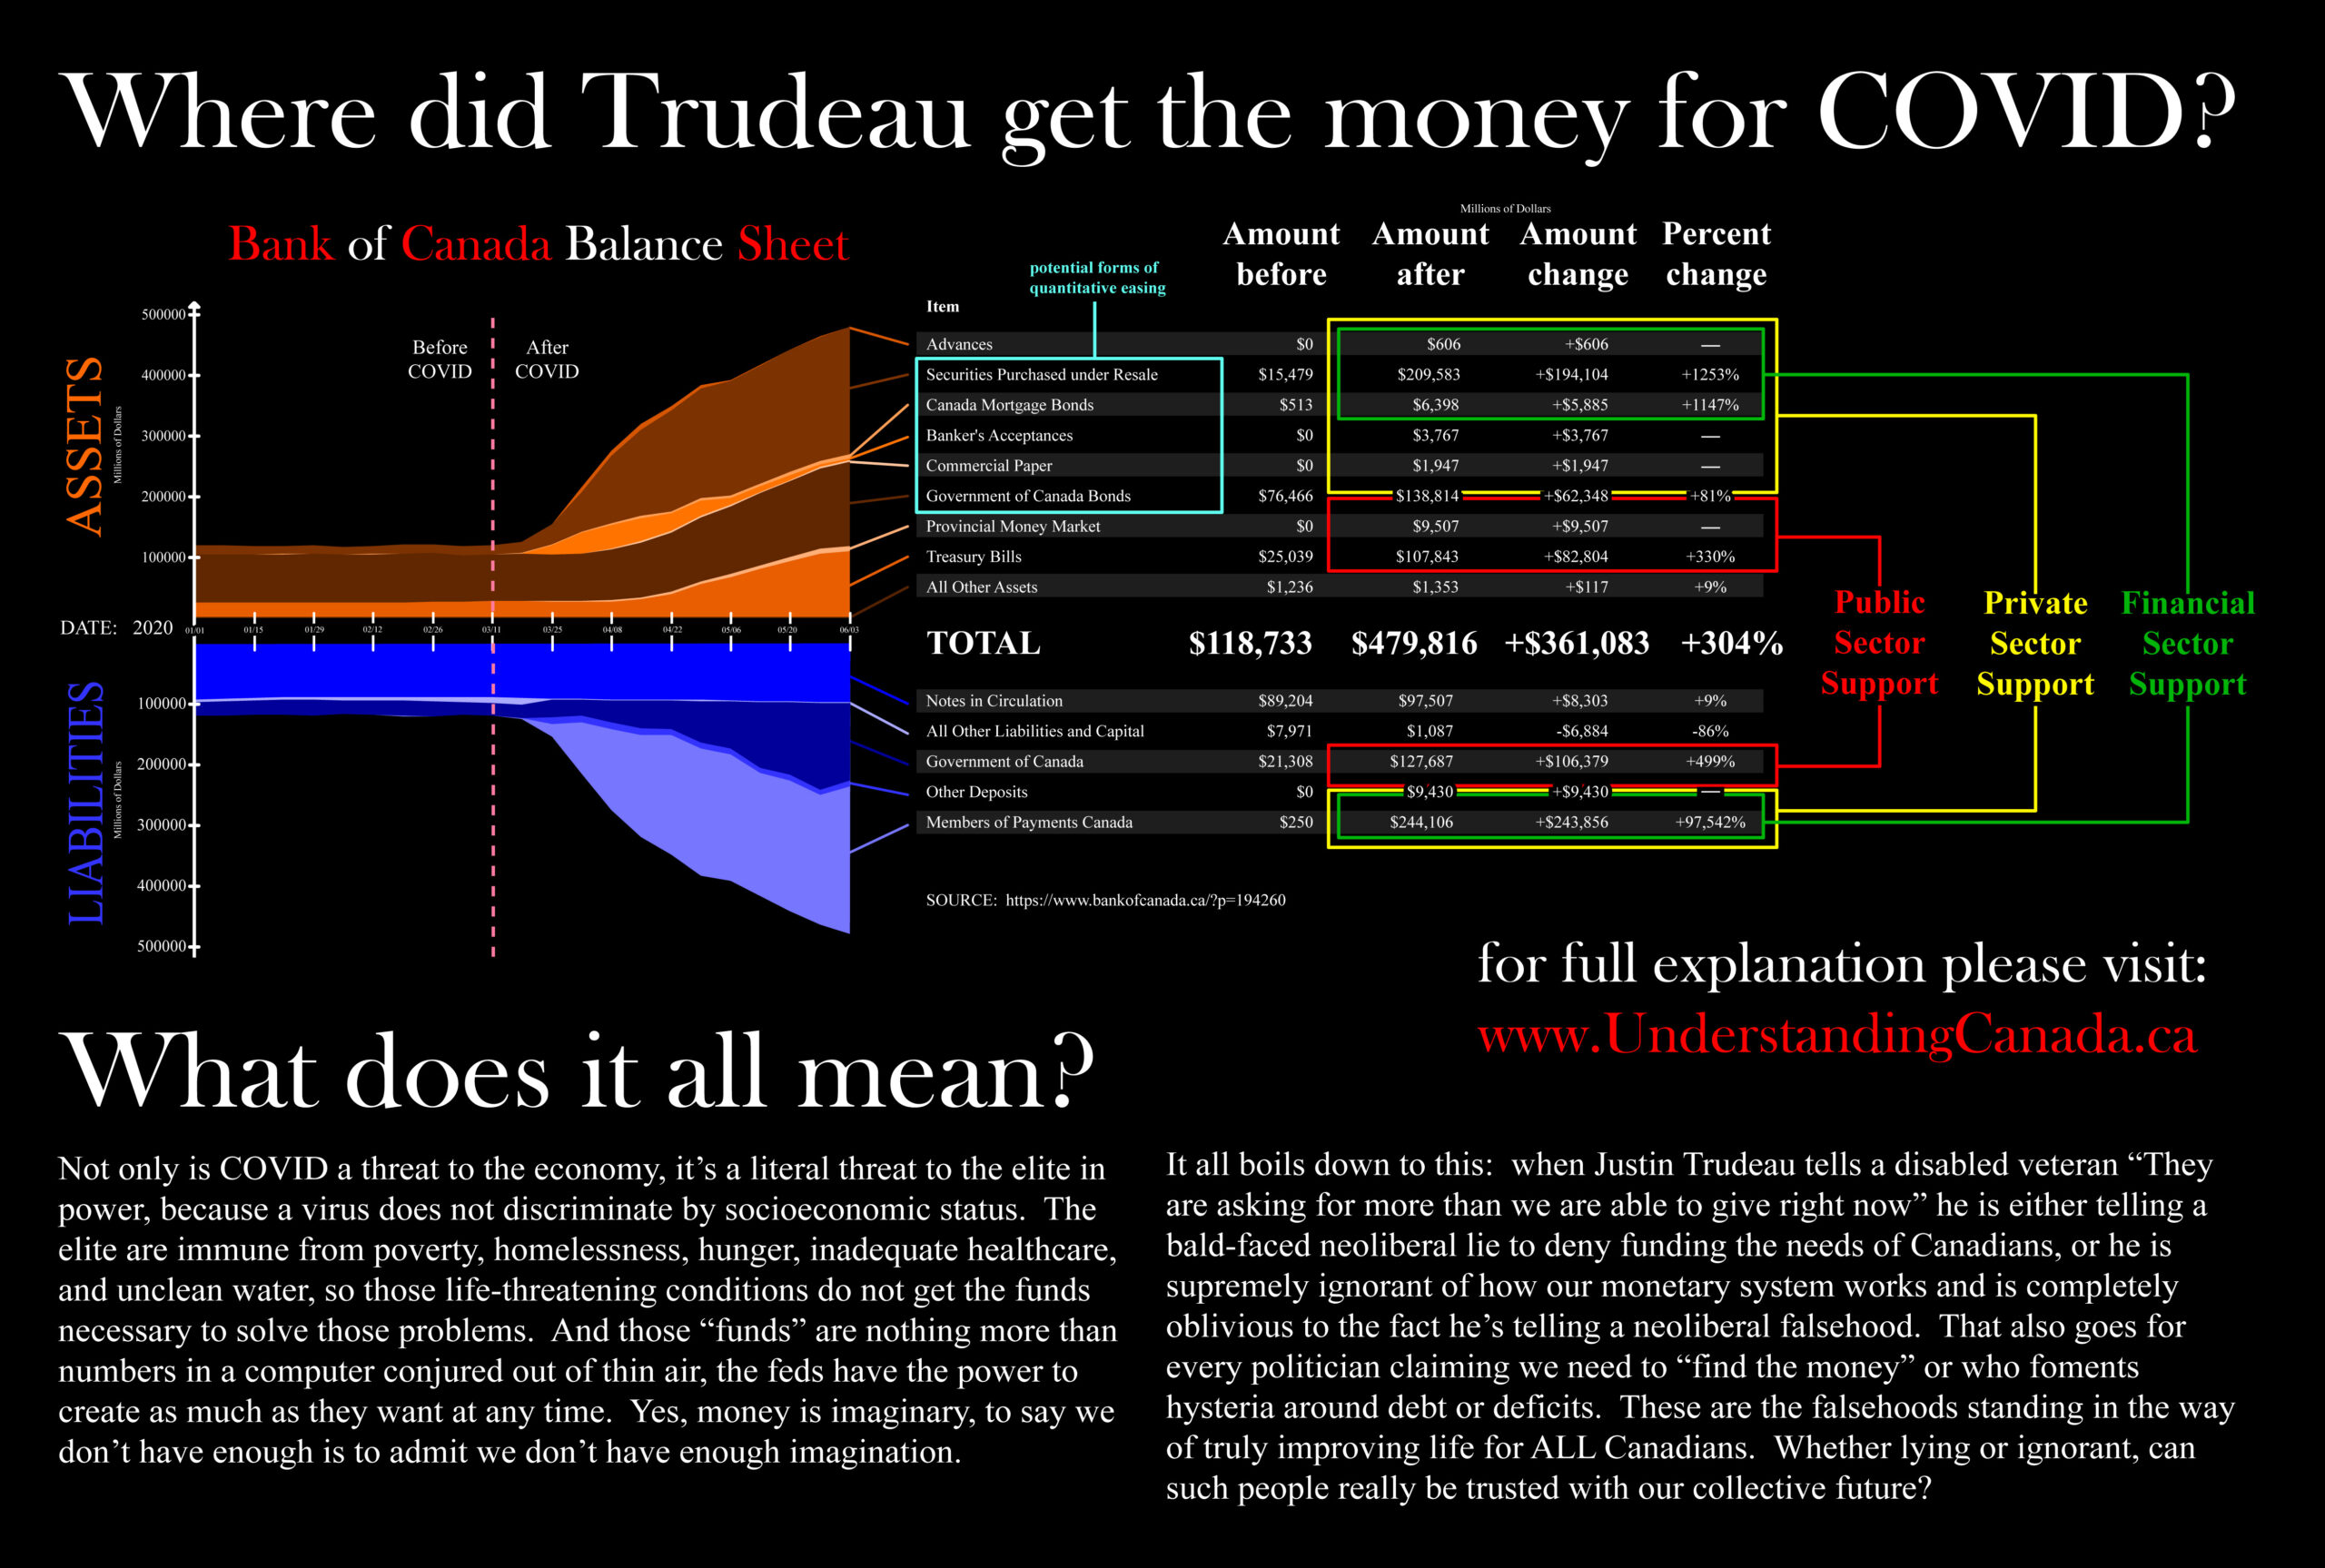 Where did Trudeau get that COVID cash?